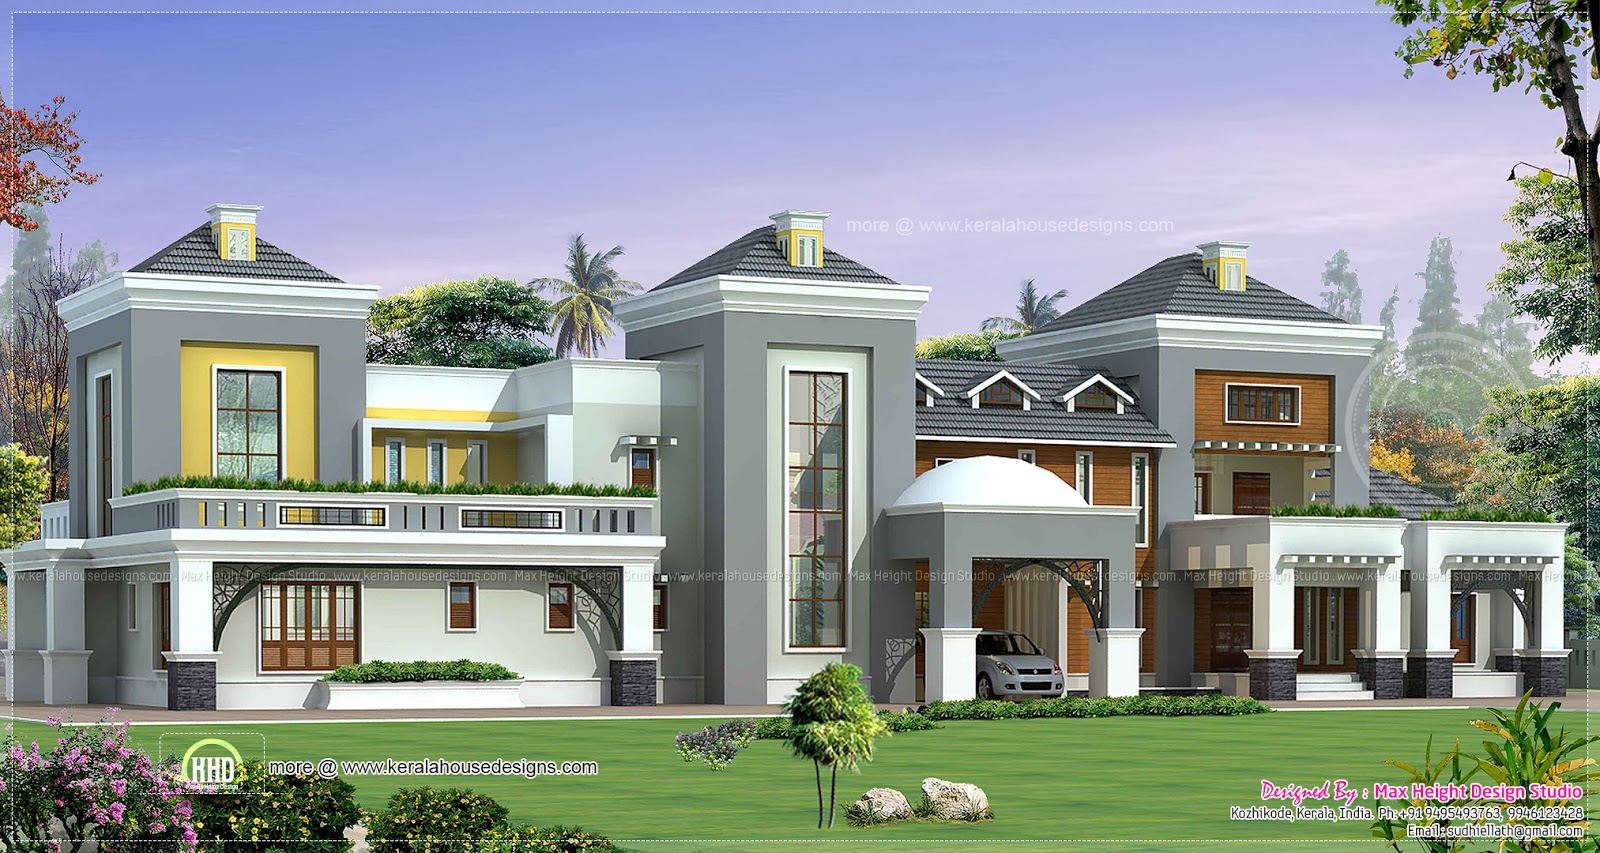 Luxury house plan with photo kerala home design and for Luxury home blueprints